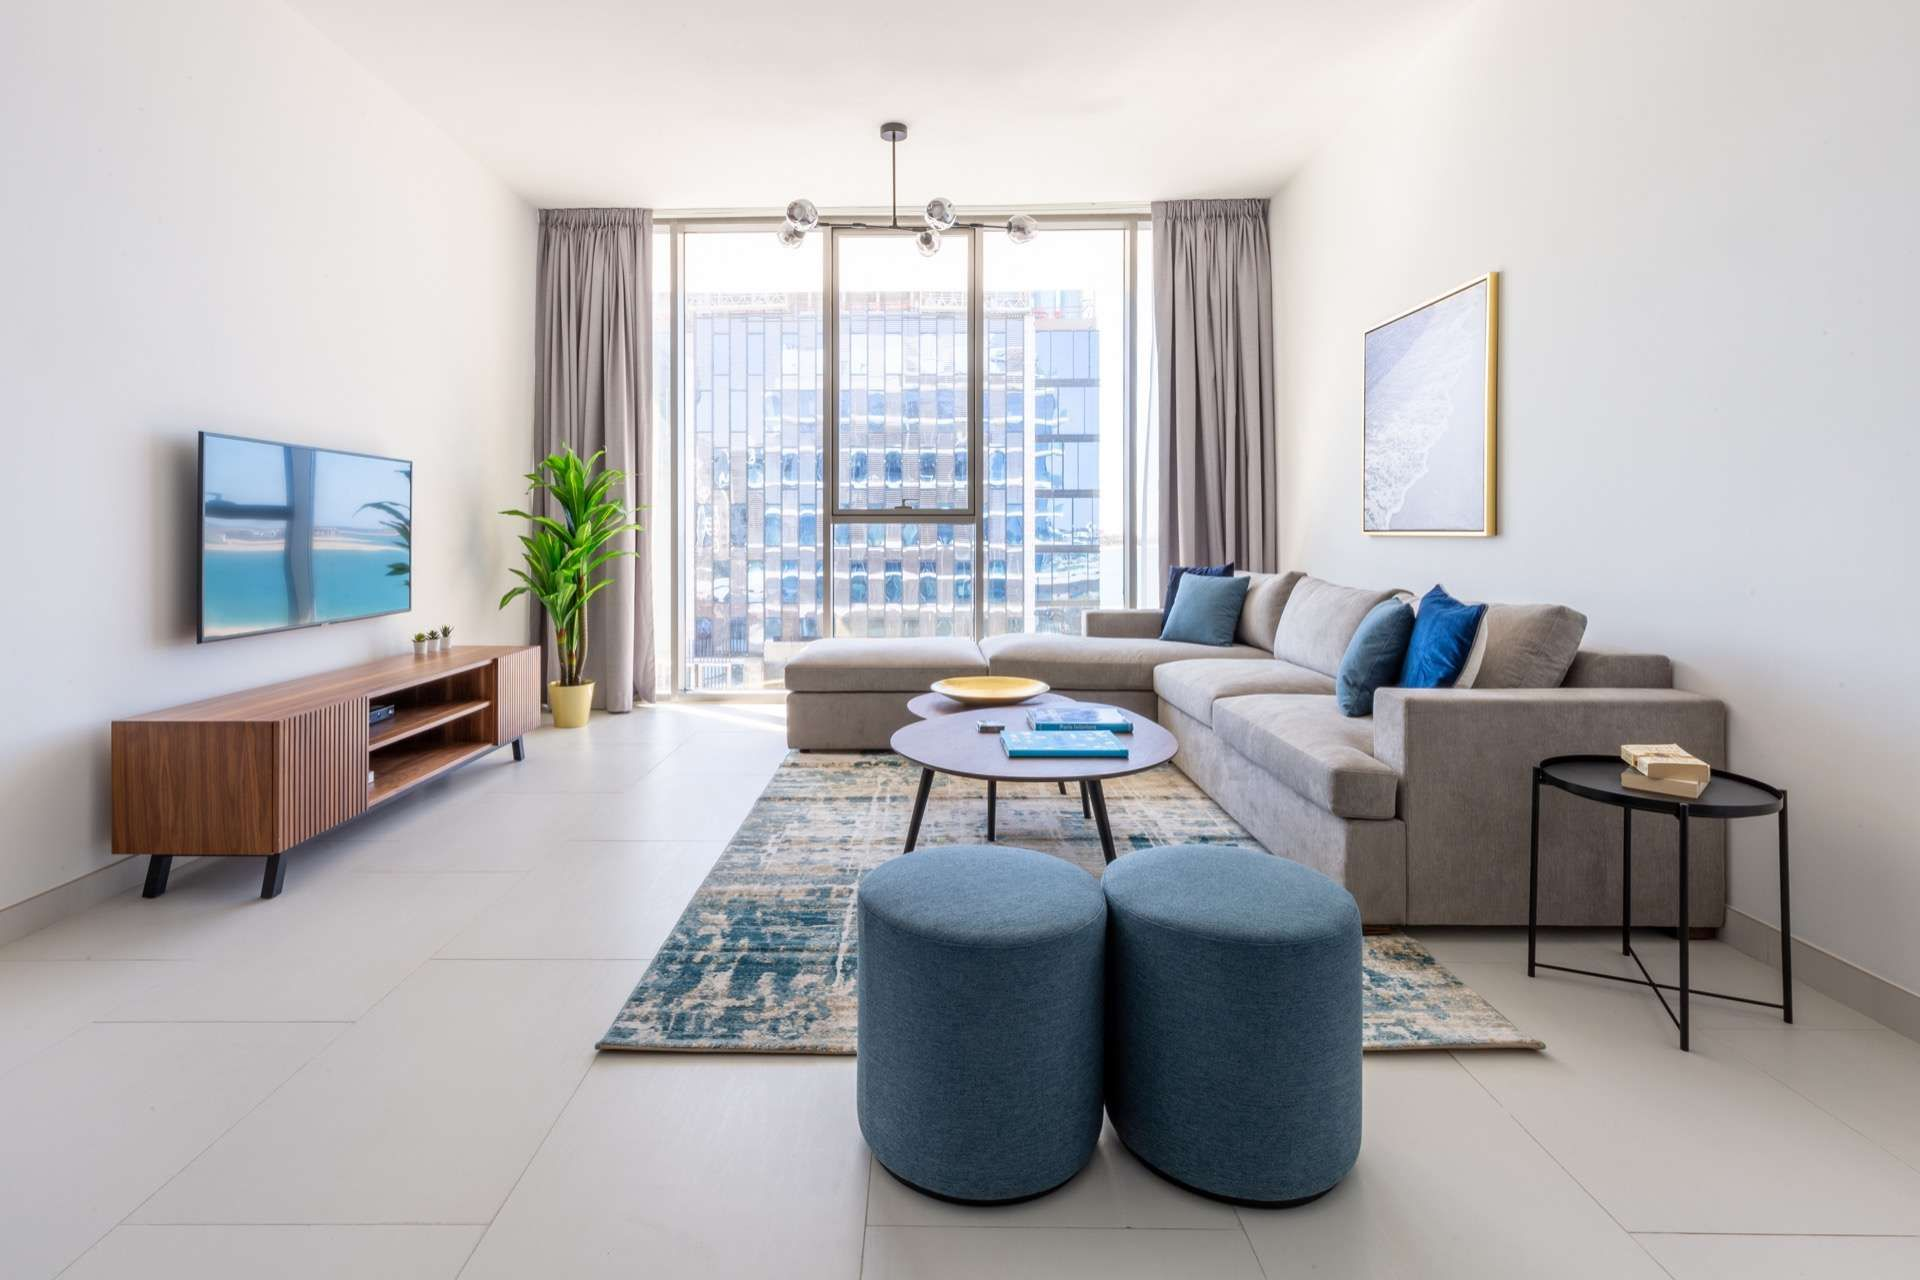 Apartments For Rent In Dubai Furnished Rental Apartments Luxuryproperty Com Luxury Apartments Apartment Decor Looking For Apartments